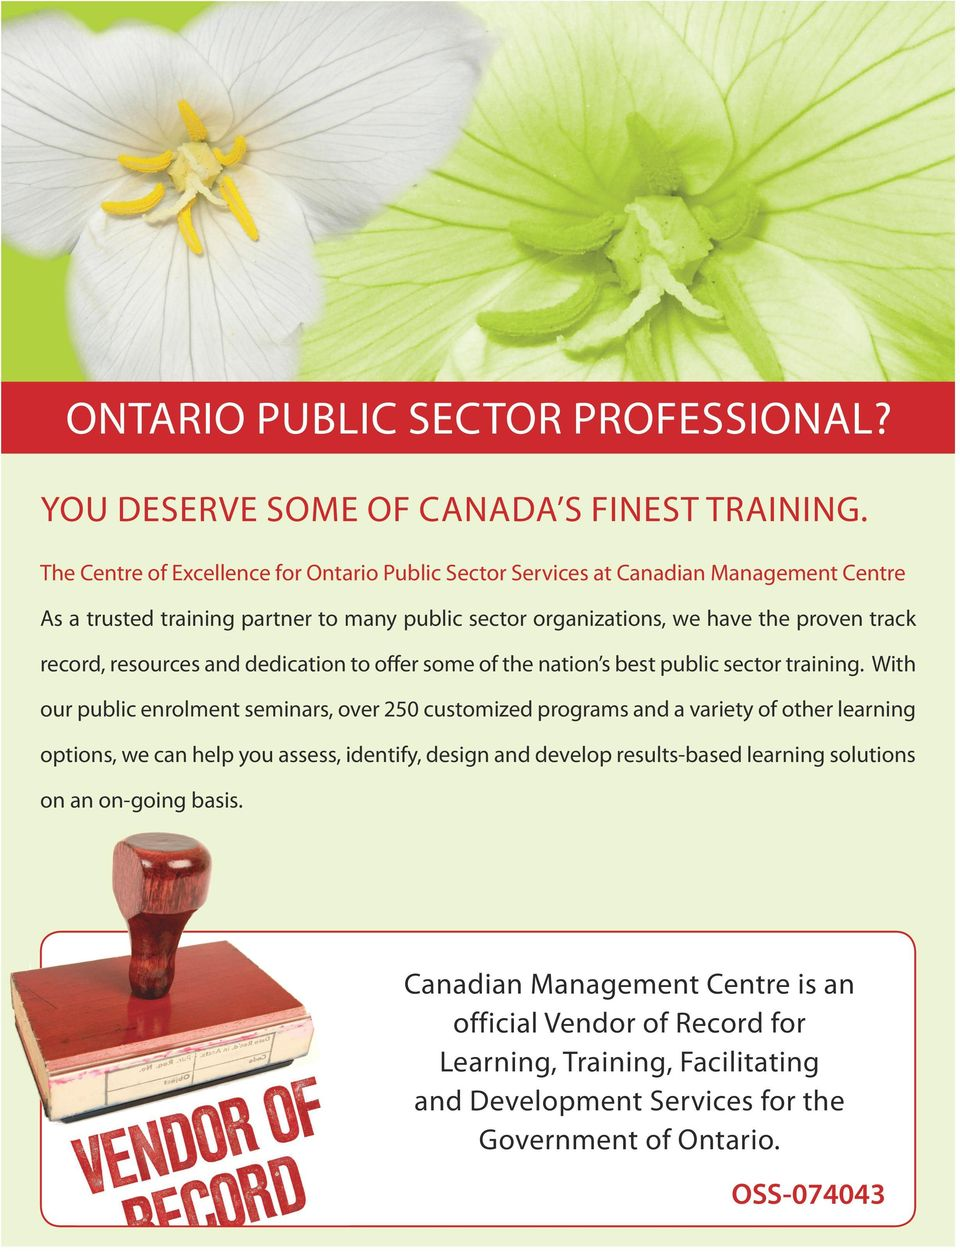 record, resources and dedication to offer some of the nation s best public sector training.